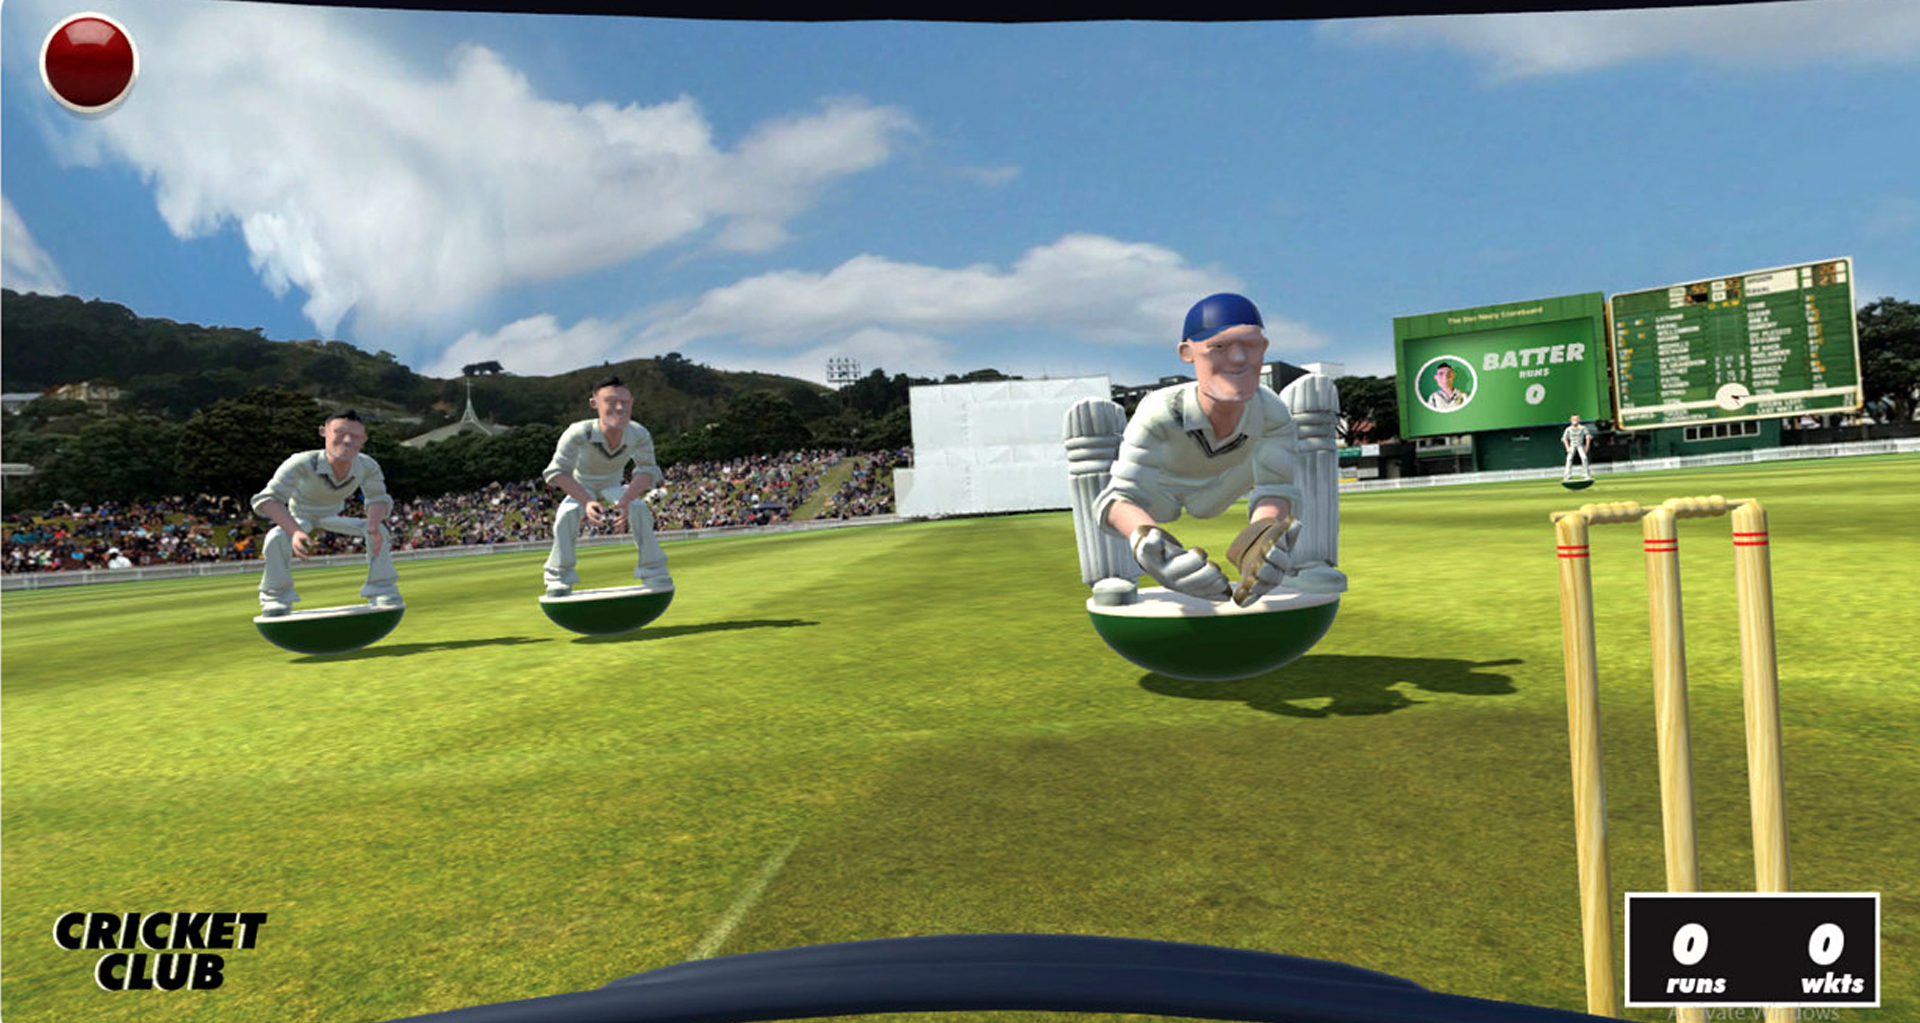 cricket-virtual-reality-event-games